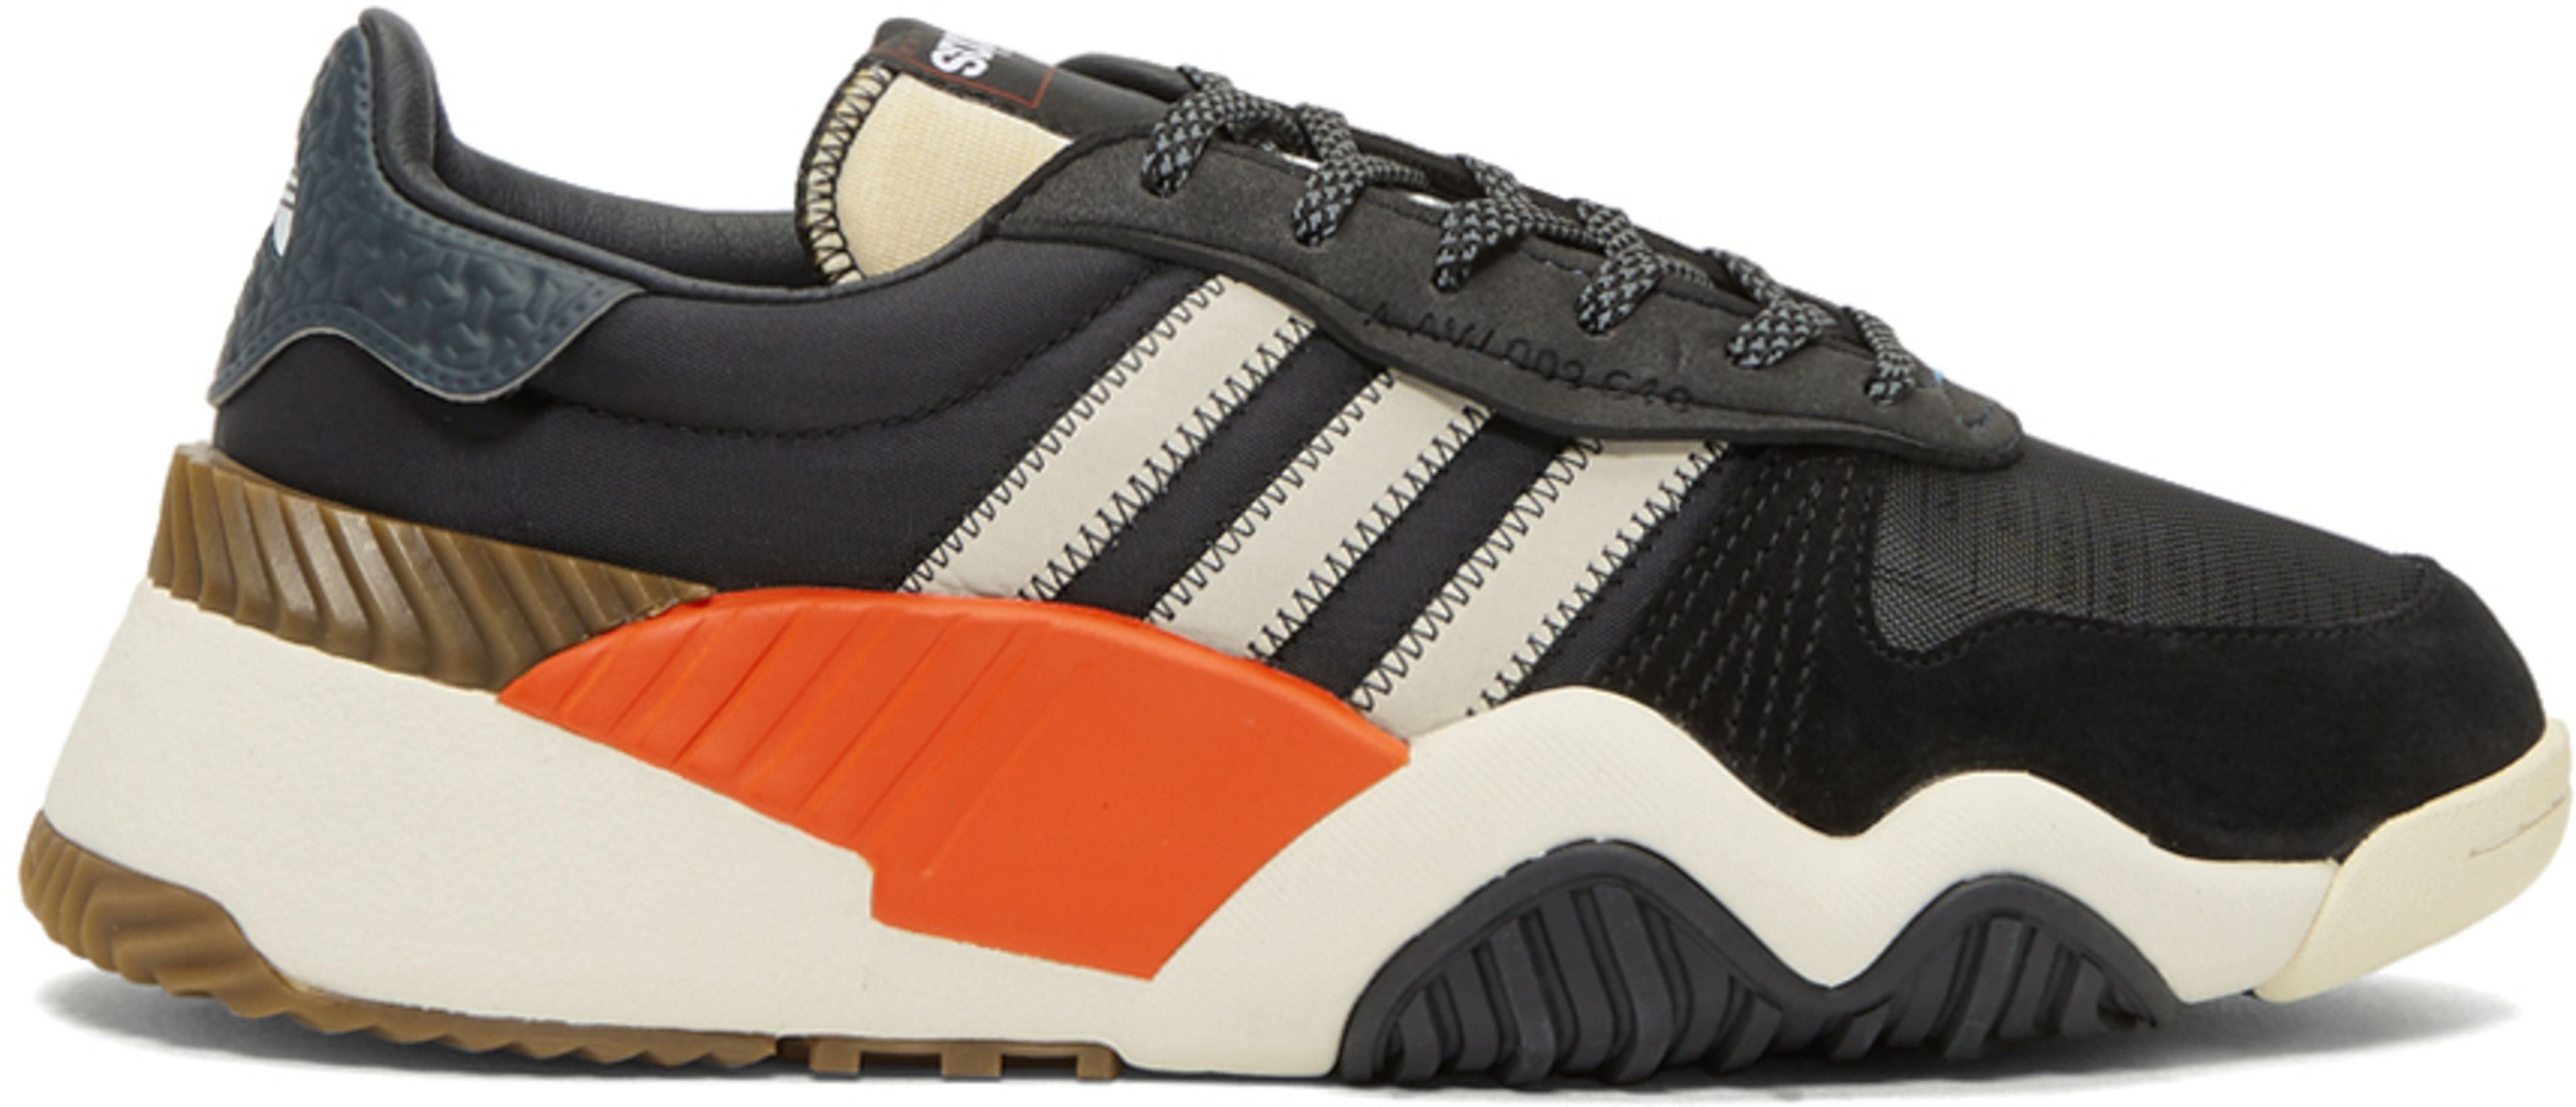 timeless design 6755b 166c3 adidas Originals by Alexander Wang - Black AW Turnout Trainer Sneakers